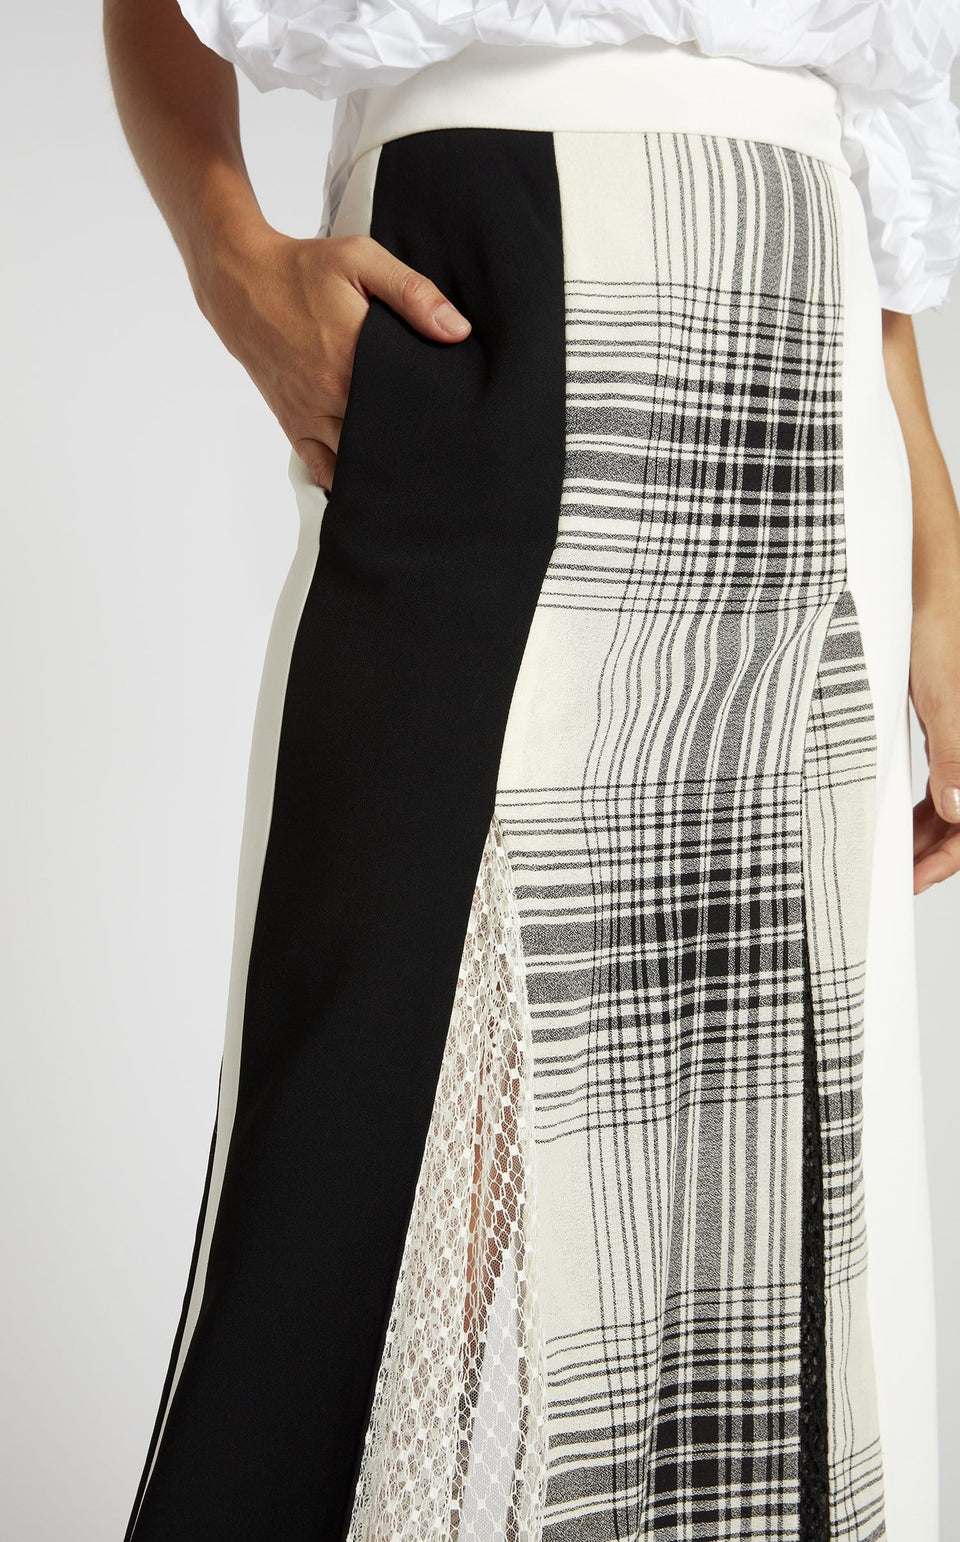 Havana Skirt In Monochrome from Roland Mouret